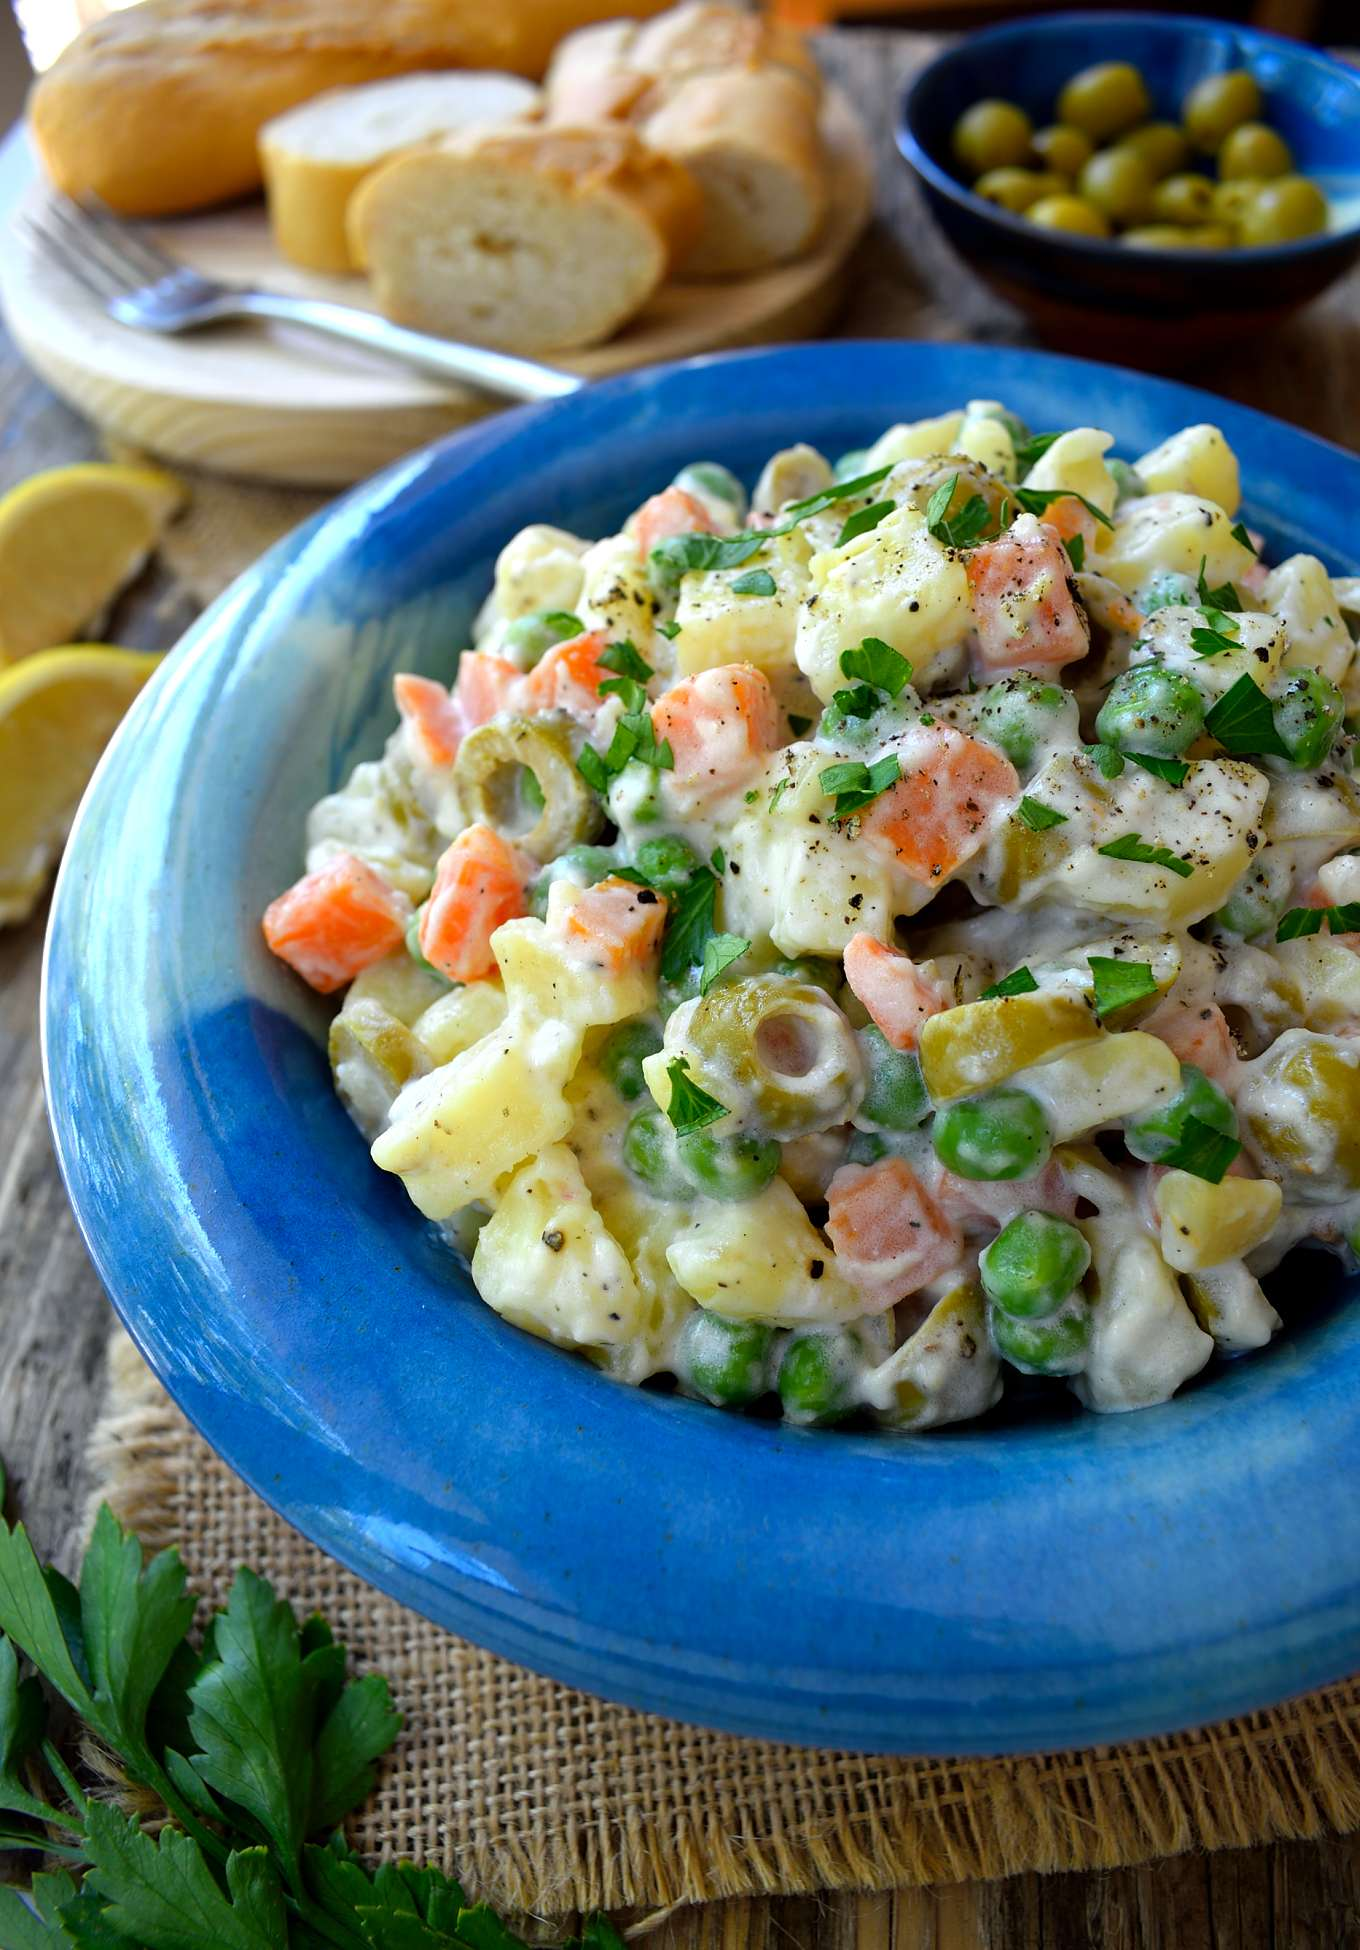 Here's a recipe for another uber-typical Spanish tapa: ensaladilla rusa or vegan Russian salad. It's a very easy Spanish potato salad that will most definitely find in any and all bars serving tapas in Barcelona. However, you'd be hard-pressed to find a vegan version of ensaladilla rusa, as it usually contains tuna and always mayonnaise. Luckily, the tuna is not essential and the mayonnaise is easy to veganize so here's my version of vegan ensaladilla rusa.